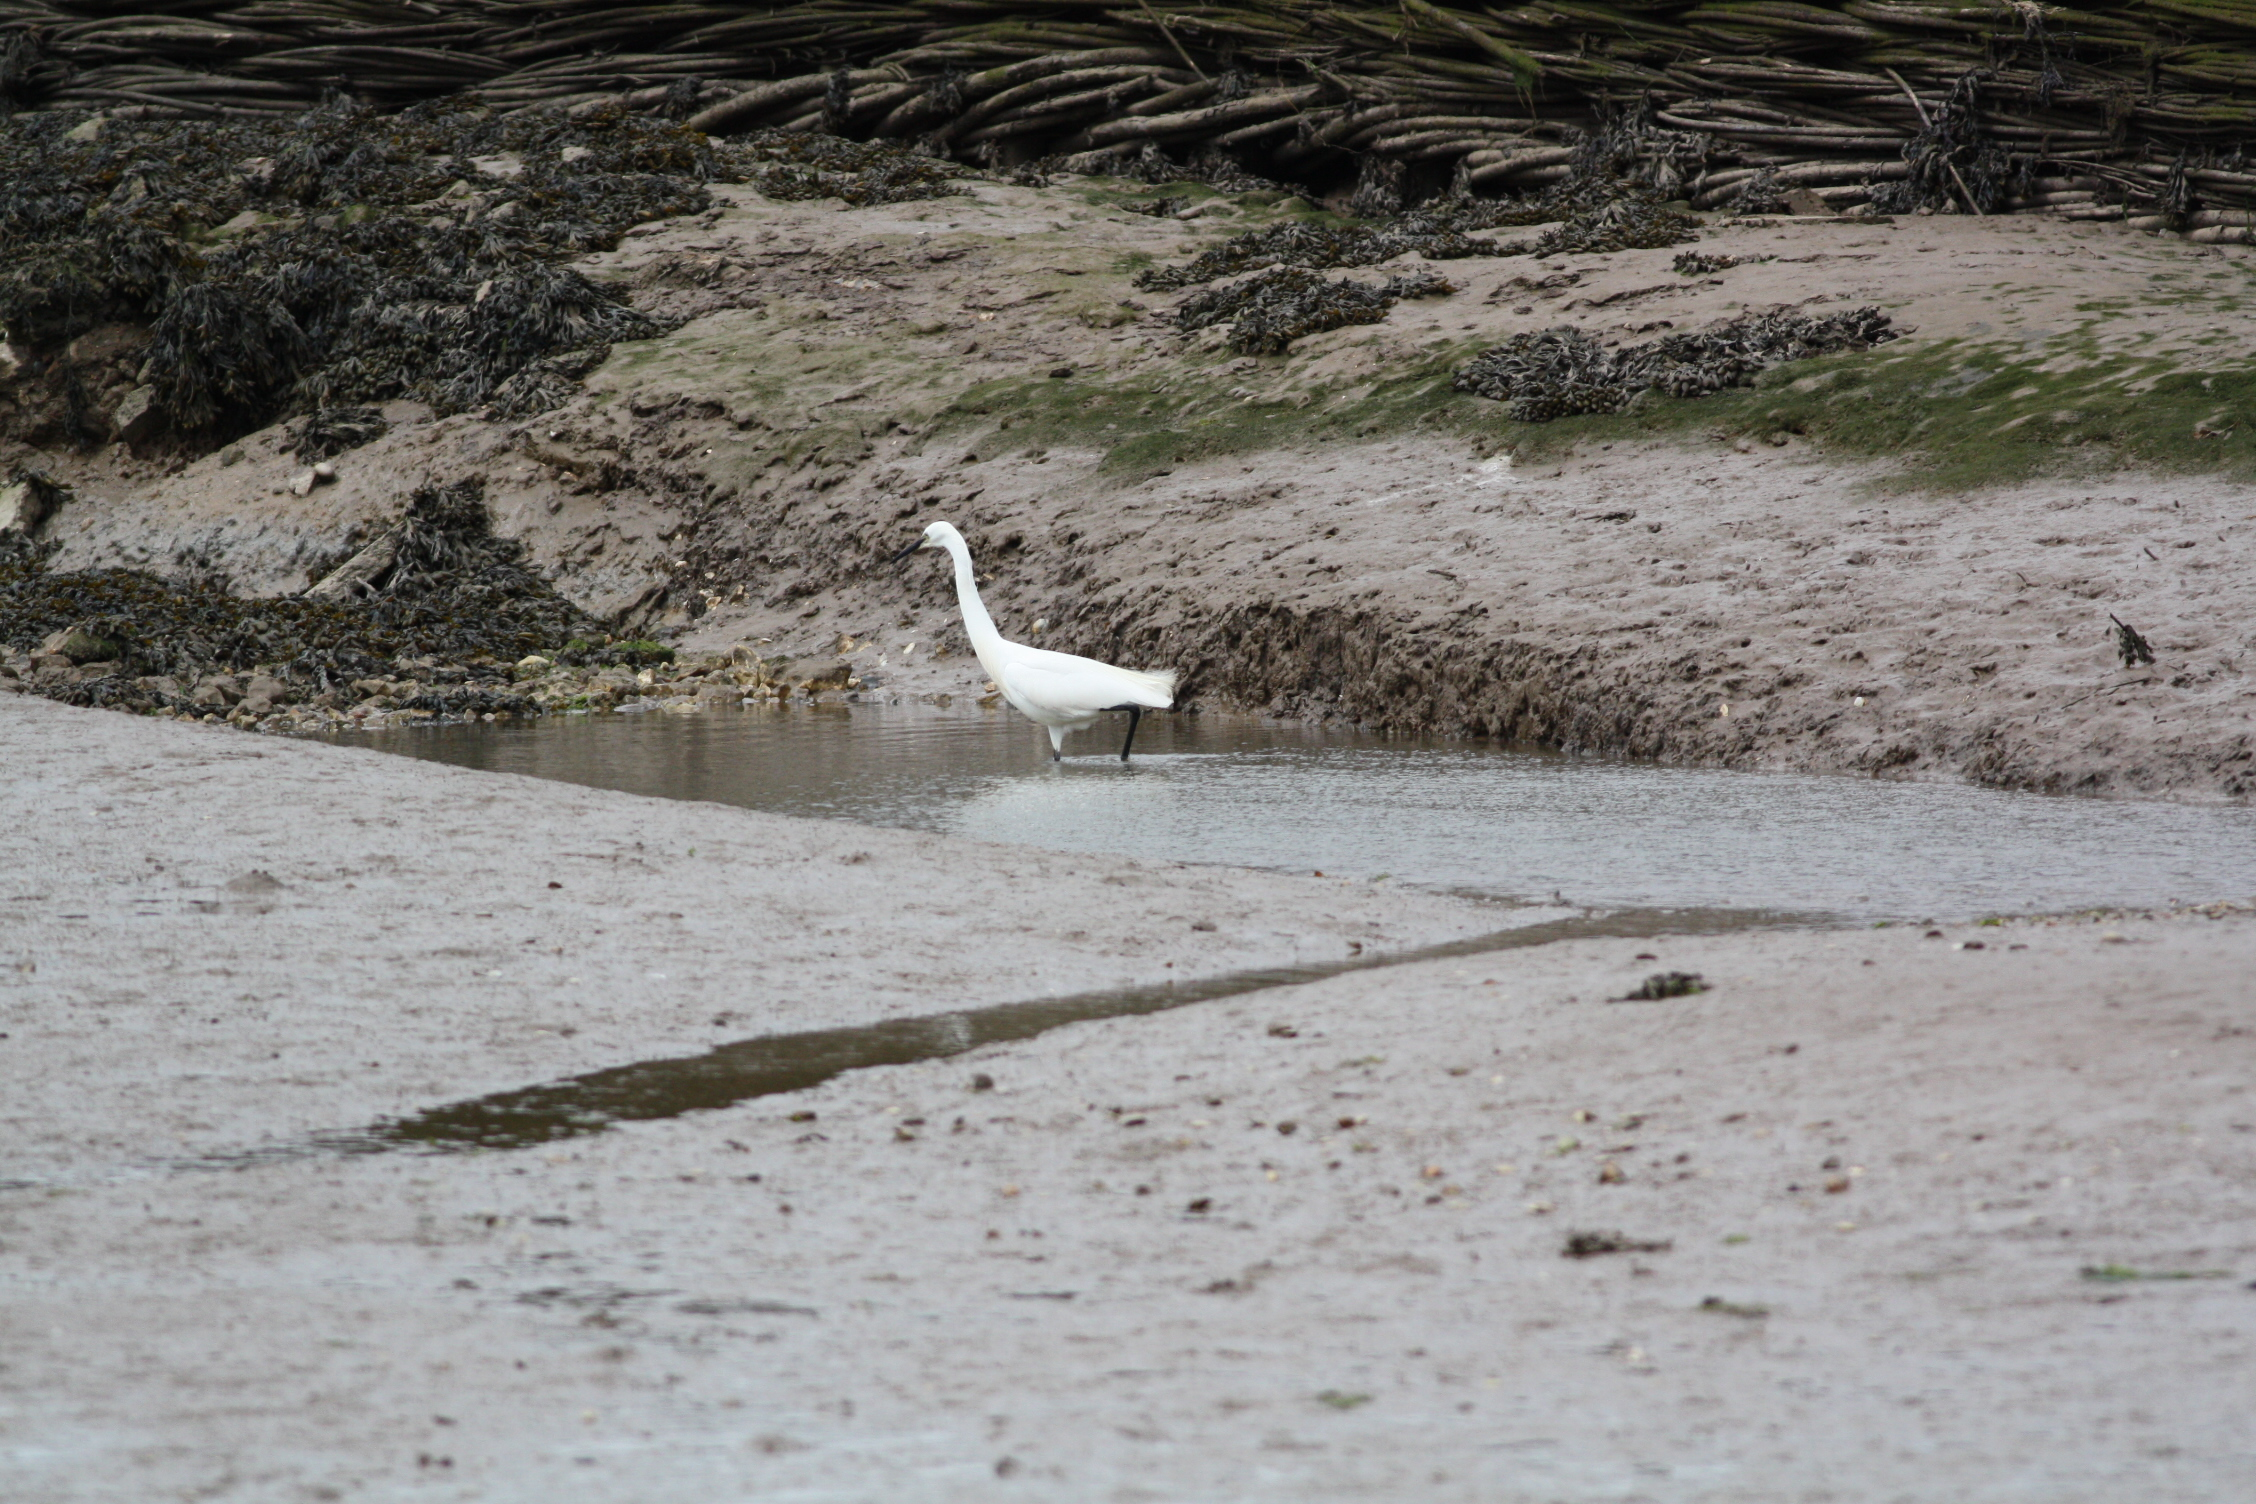 The Little Egret is a member of the Heron family and is found usually near water and often in coastal areas such as Salthouse. Approx 55-60cm tall.